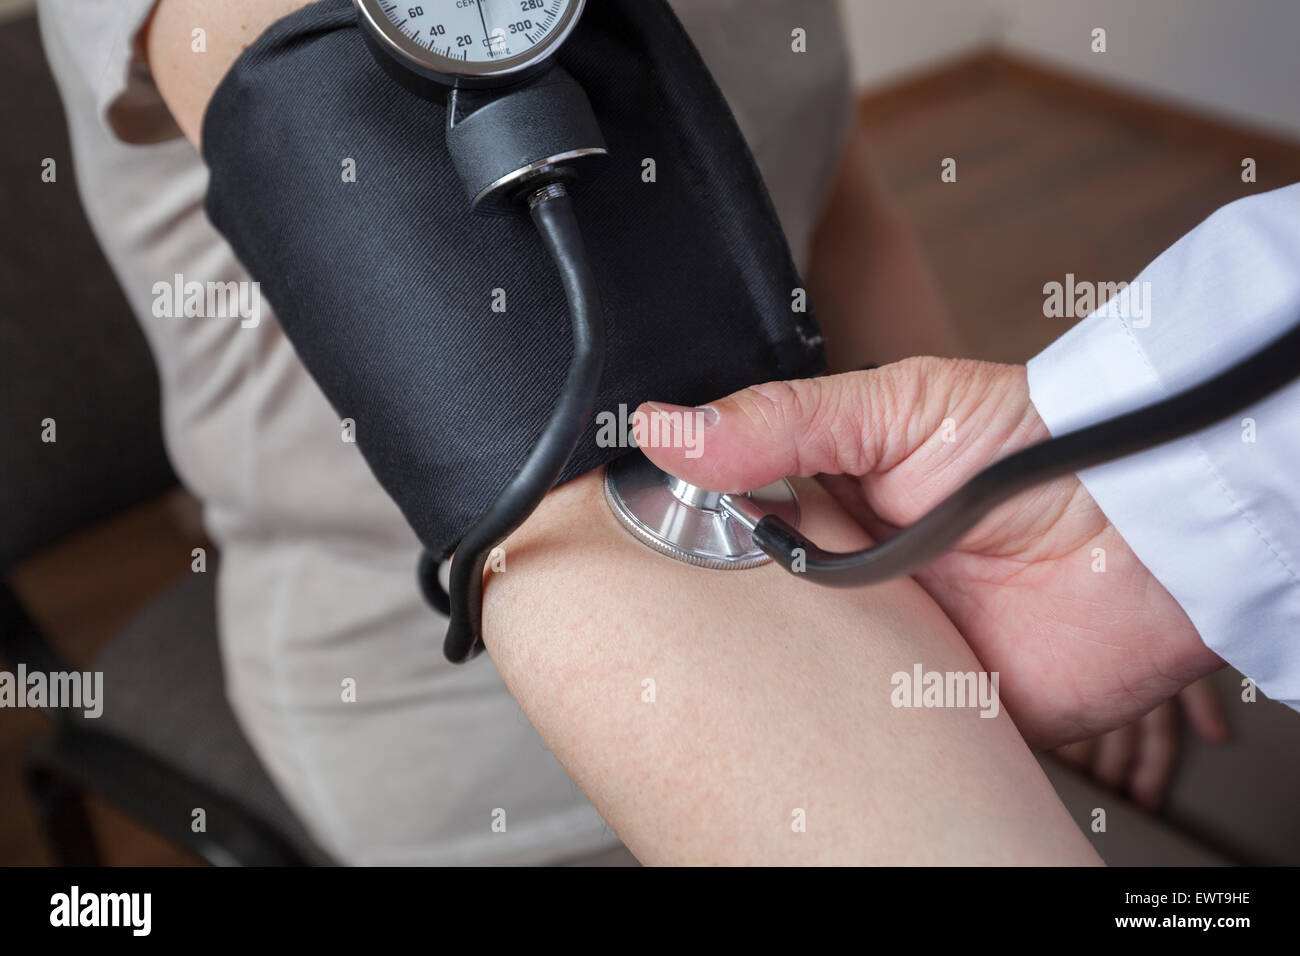 Doctor cardiologist is measuring a blood pressure of woman in the consulting room. He is starting and will be careful - Stock Image